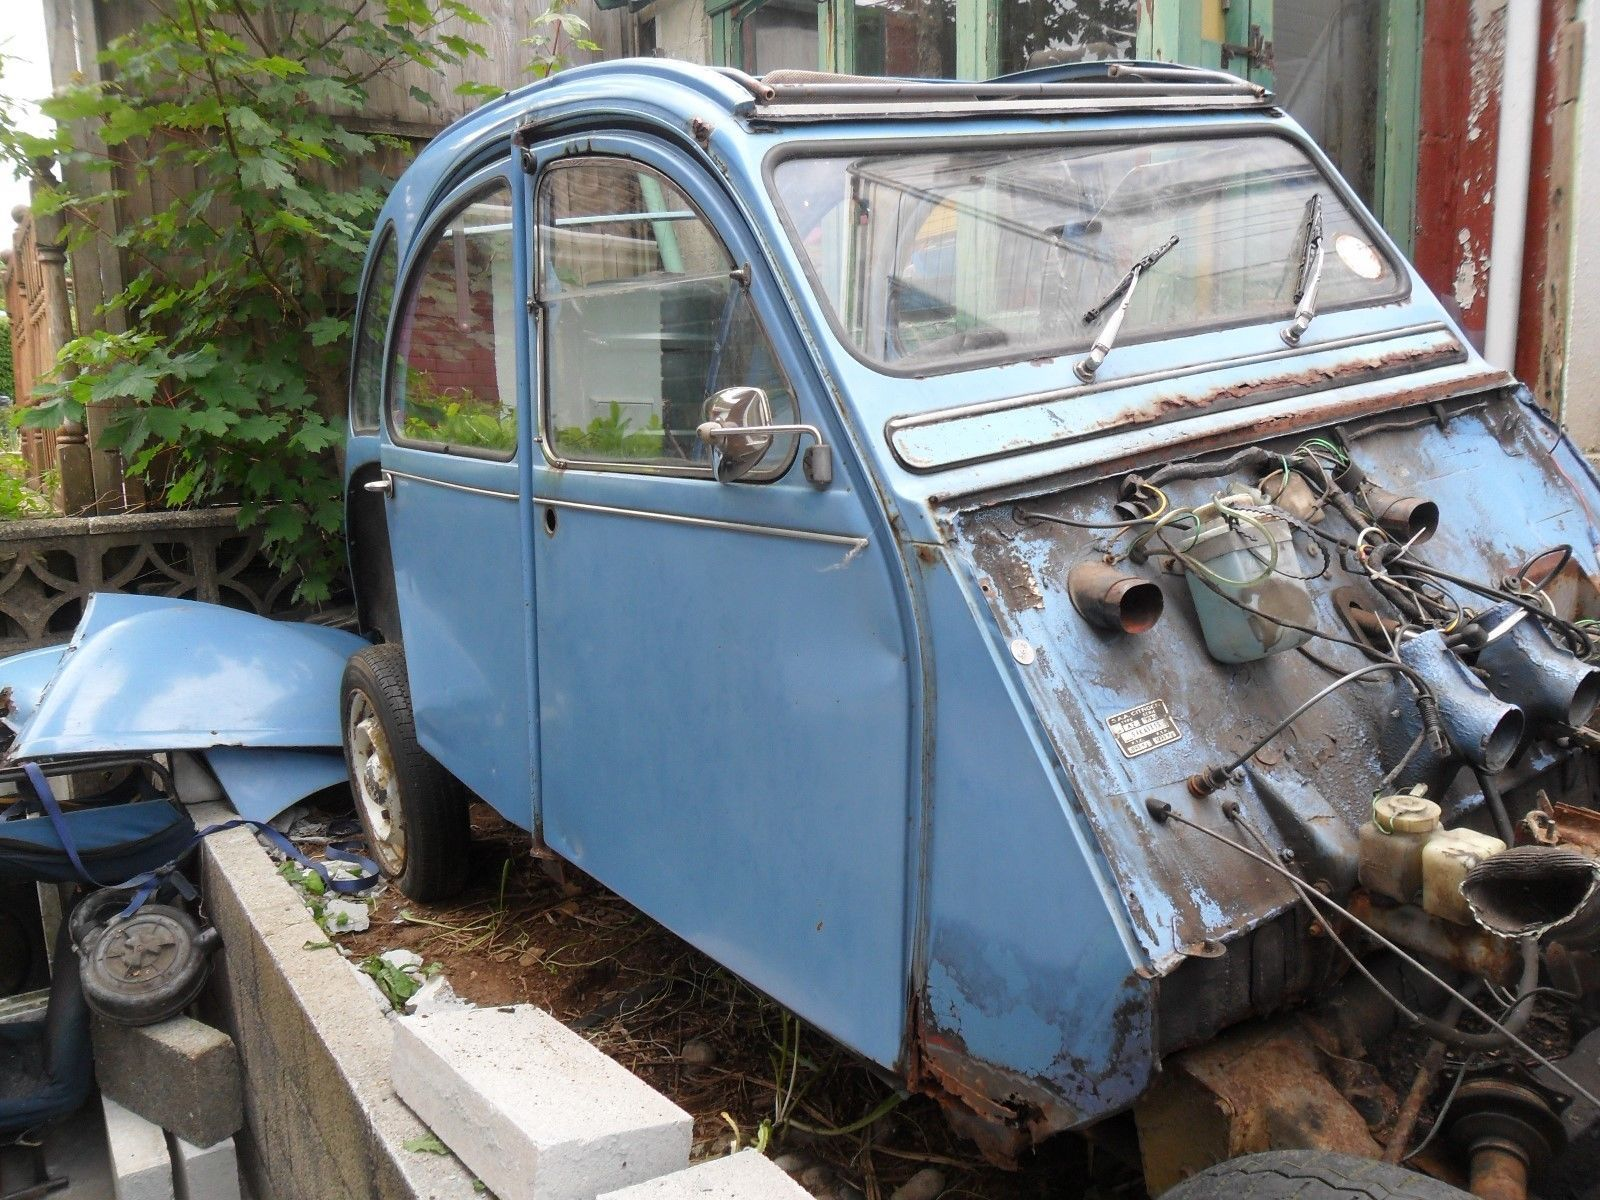 Citroen 2cv6 Paris Restoration Project Absolute Bargain